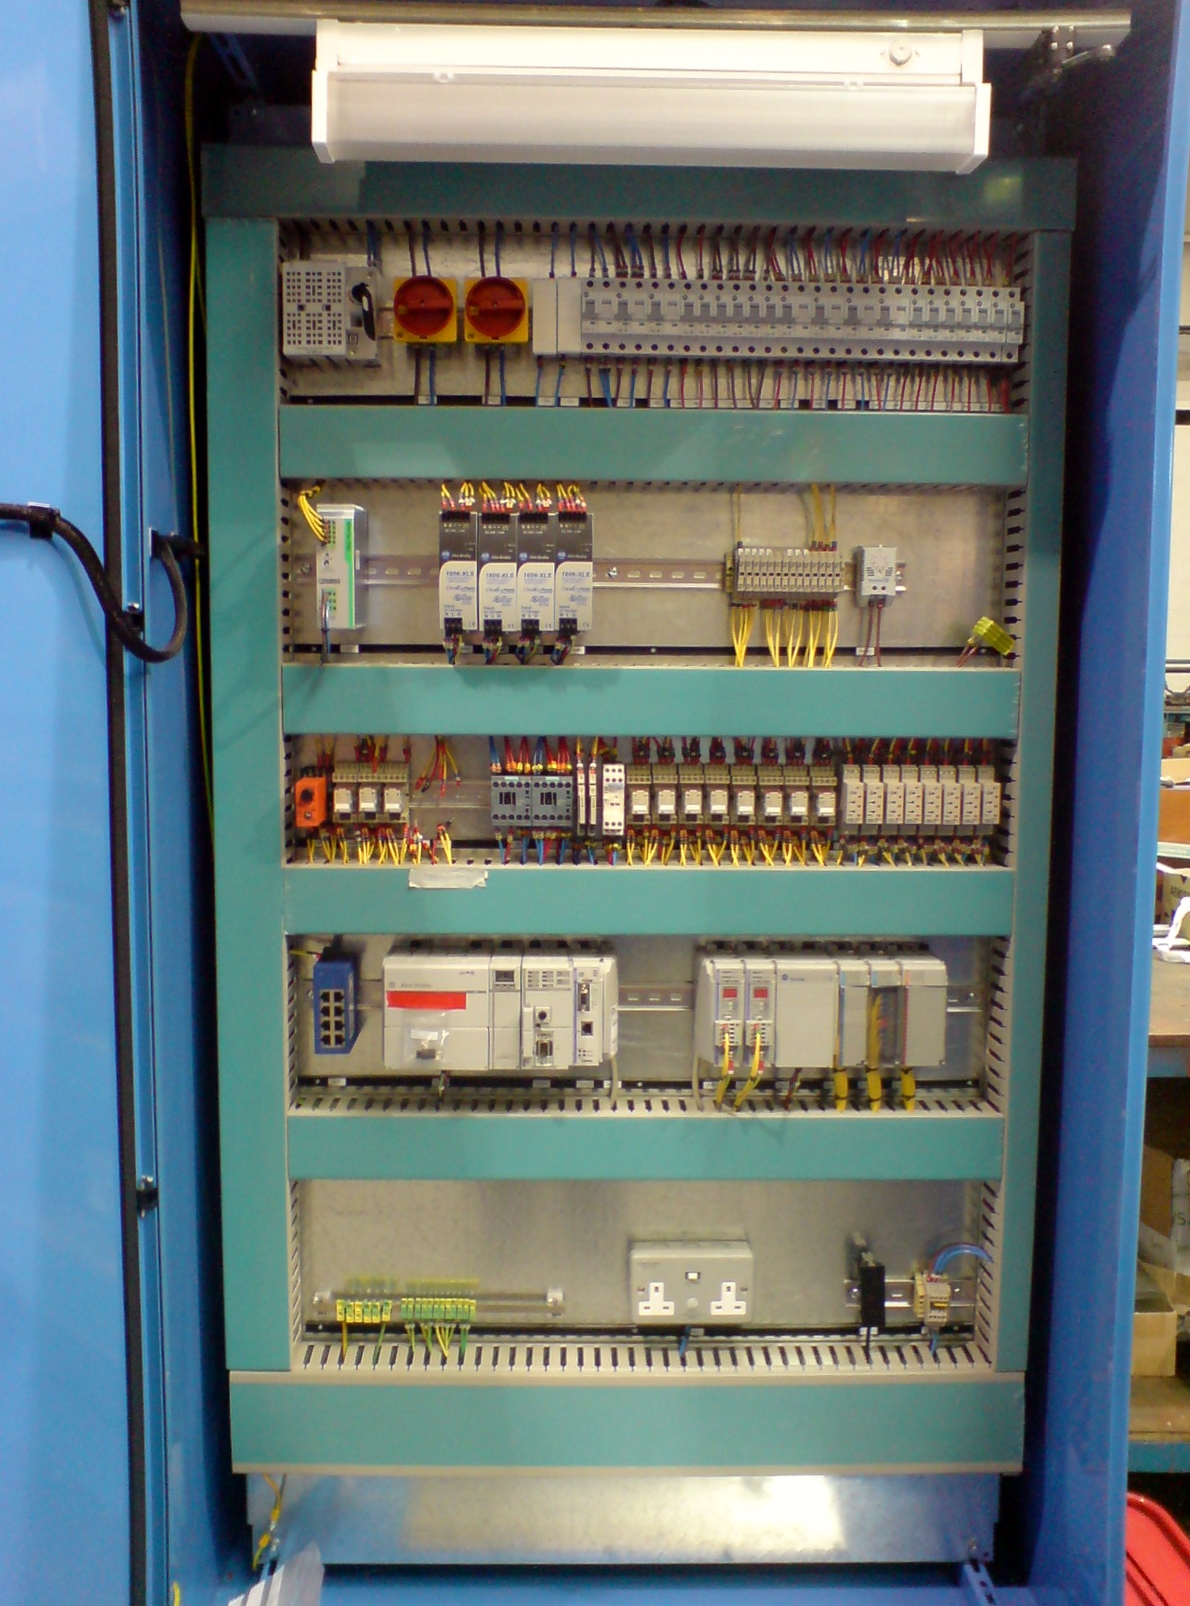 Control Panel Manufacture Knowlton And Newman Wiring Circuit Supplied With The Unit Drawings Are Completed Our Installation Team Will Attend On Site To Install Commission Units If Required